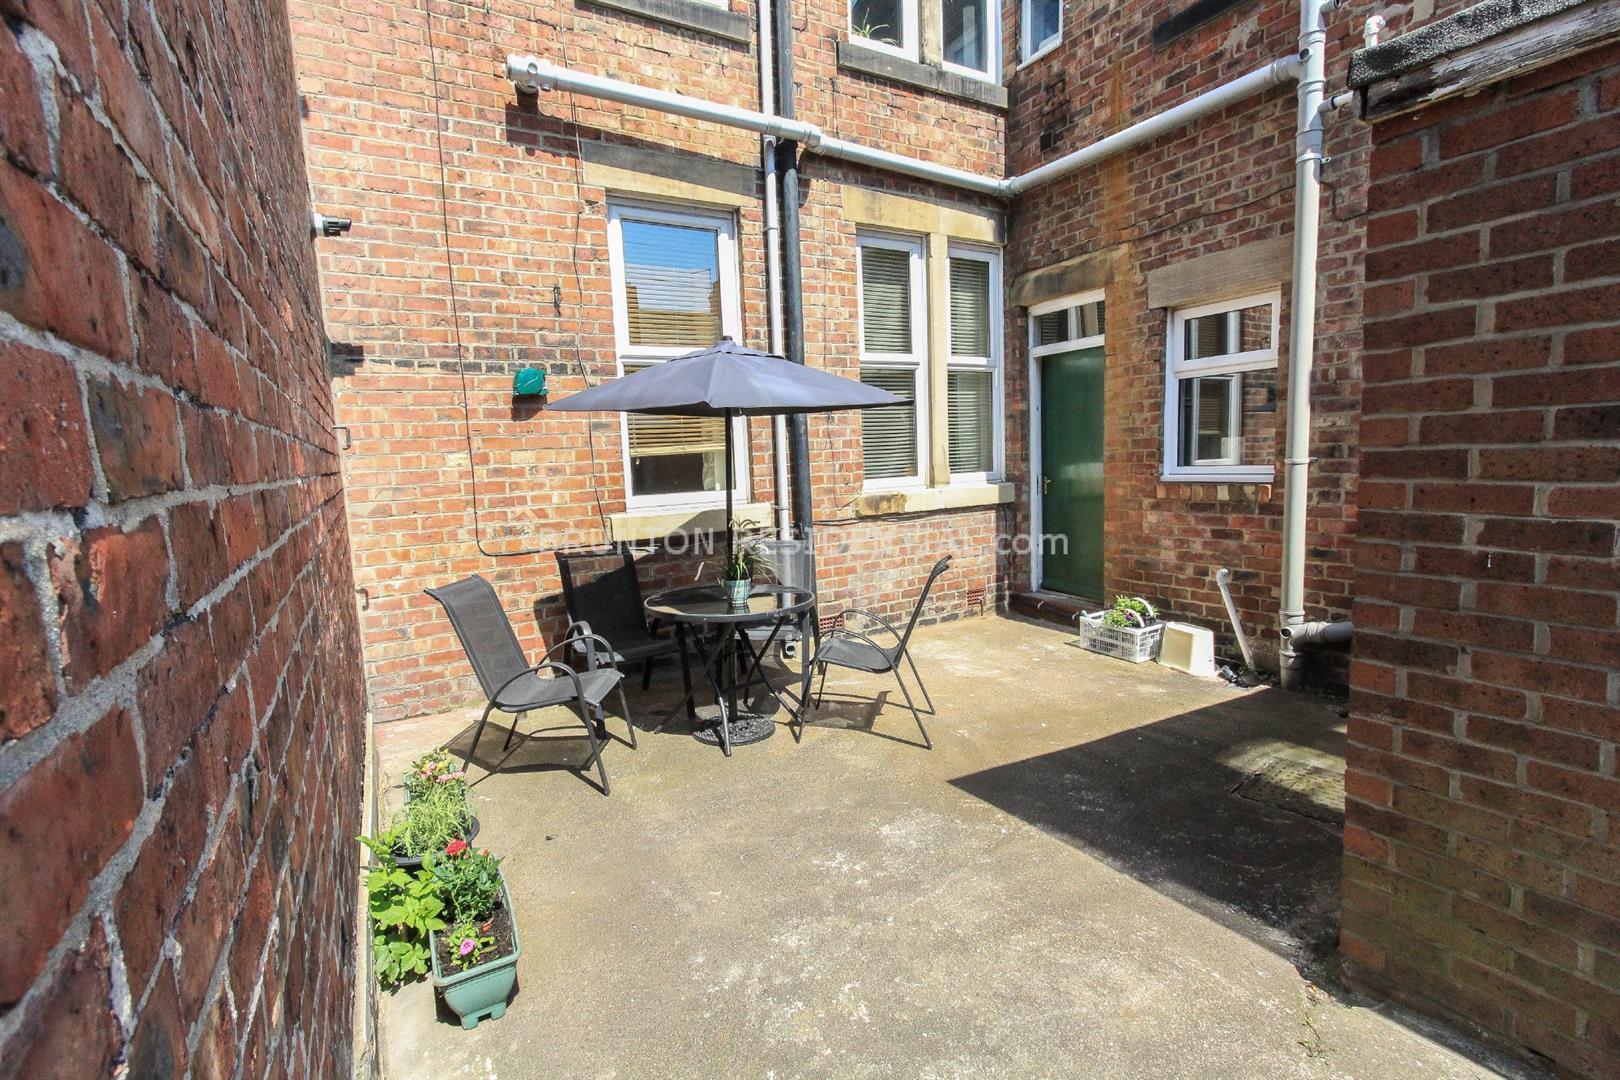 3 bed flat to rent in Newcastle Upon Tyne, NE6 5TA 13